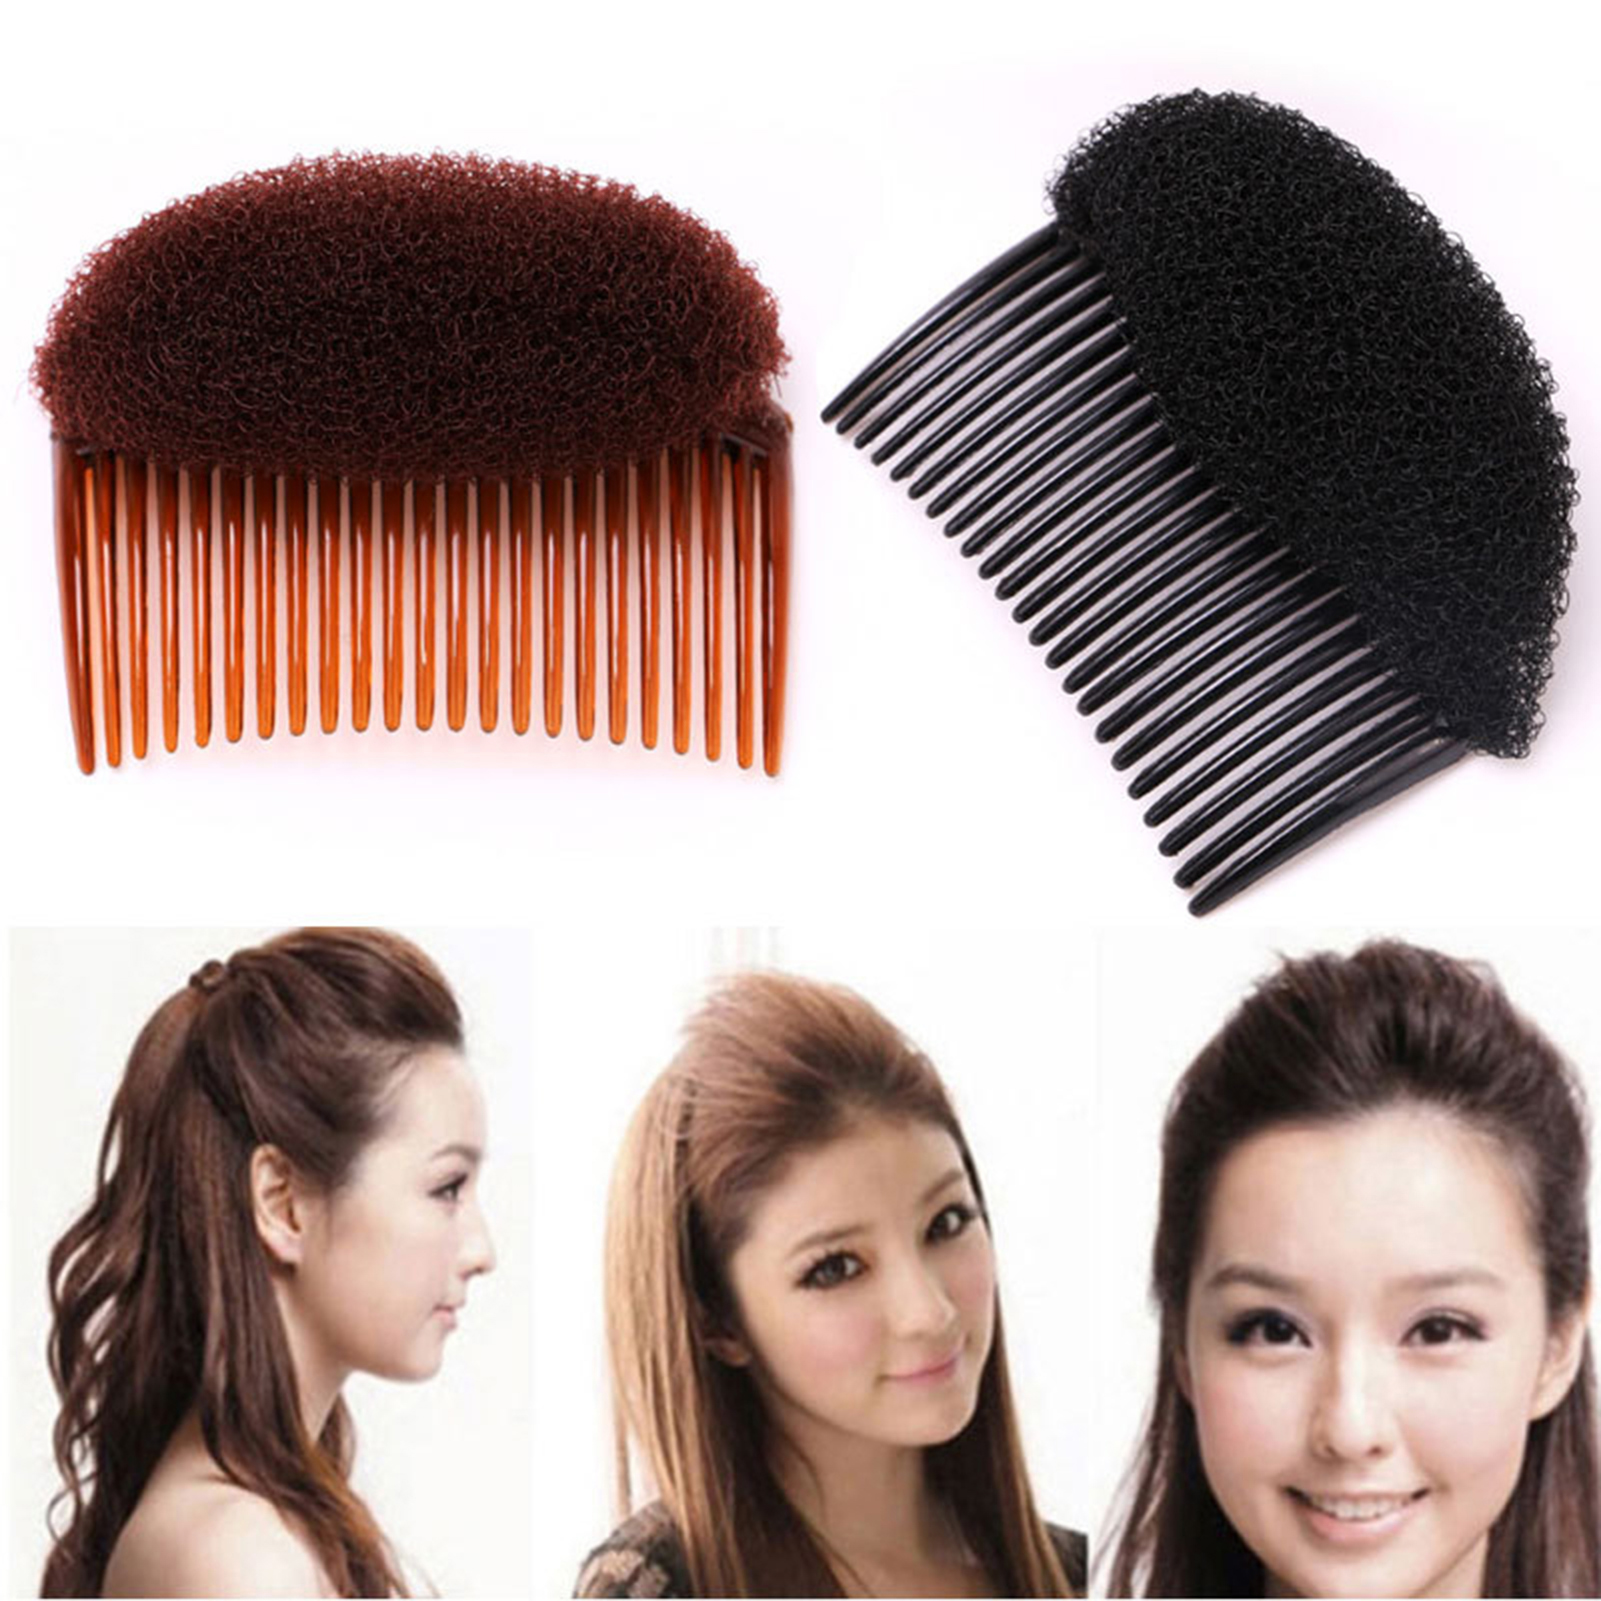 Volume Inserts Hair Clip Bump It Up Bouffant Hair Comb Bun Maker Hair Styler US Clothing, Shoes & Accessories